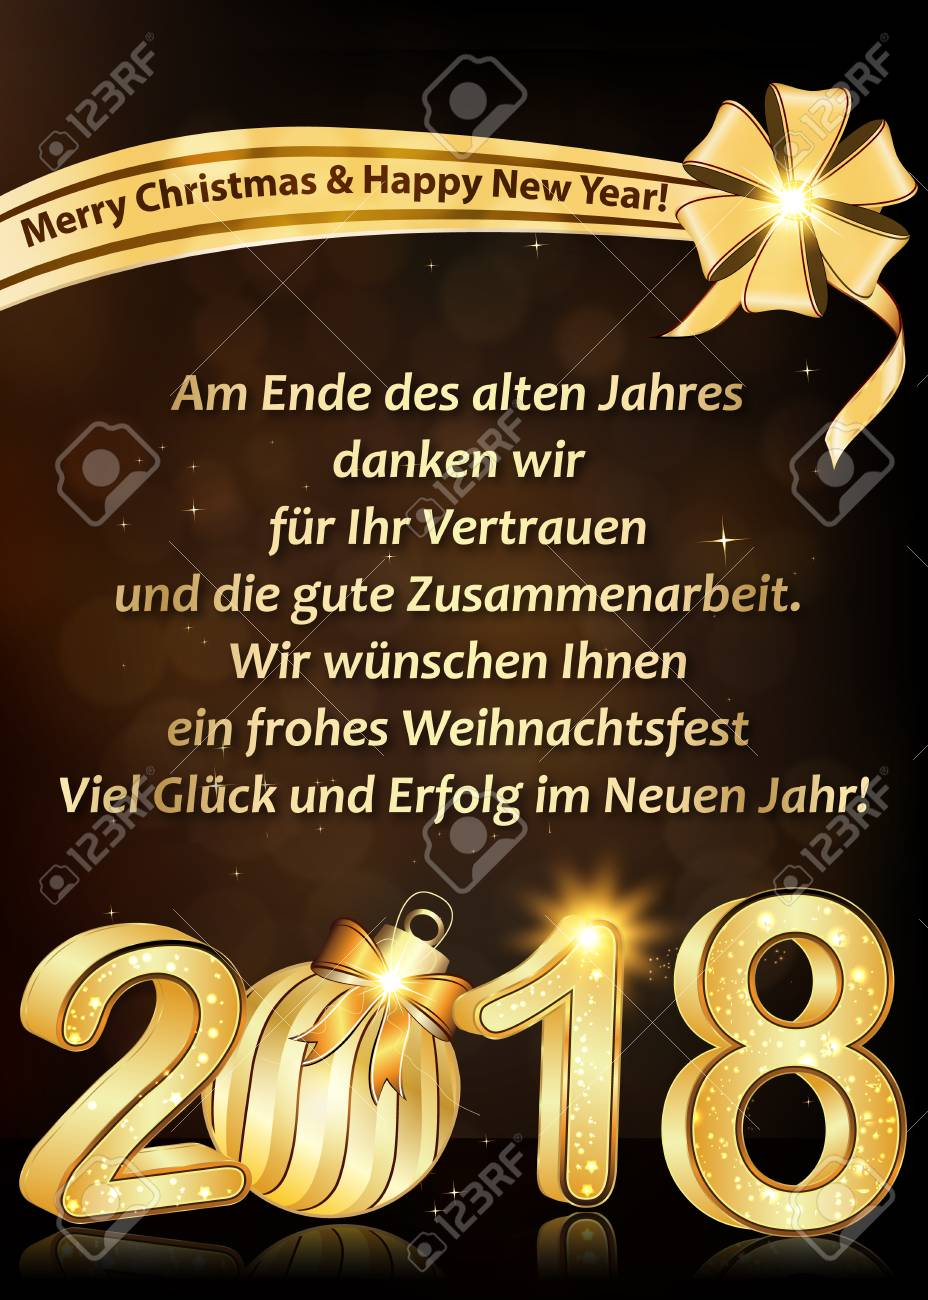 New Year 2018 Greeting Card Designed For The German Speaking Stock